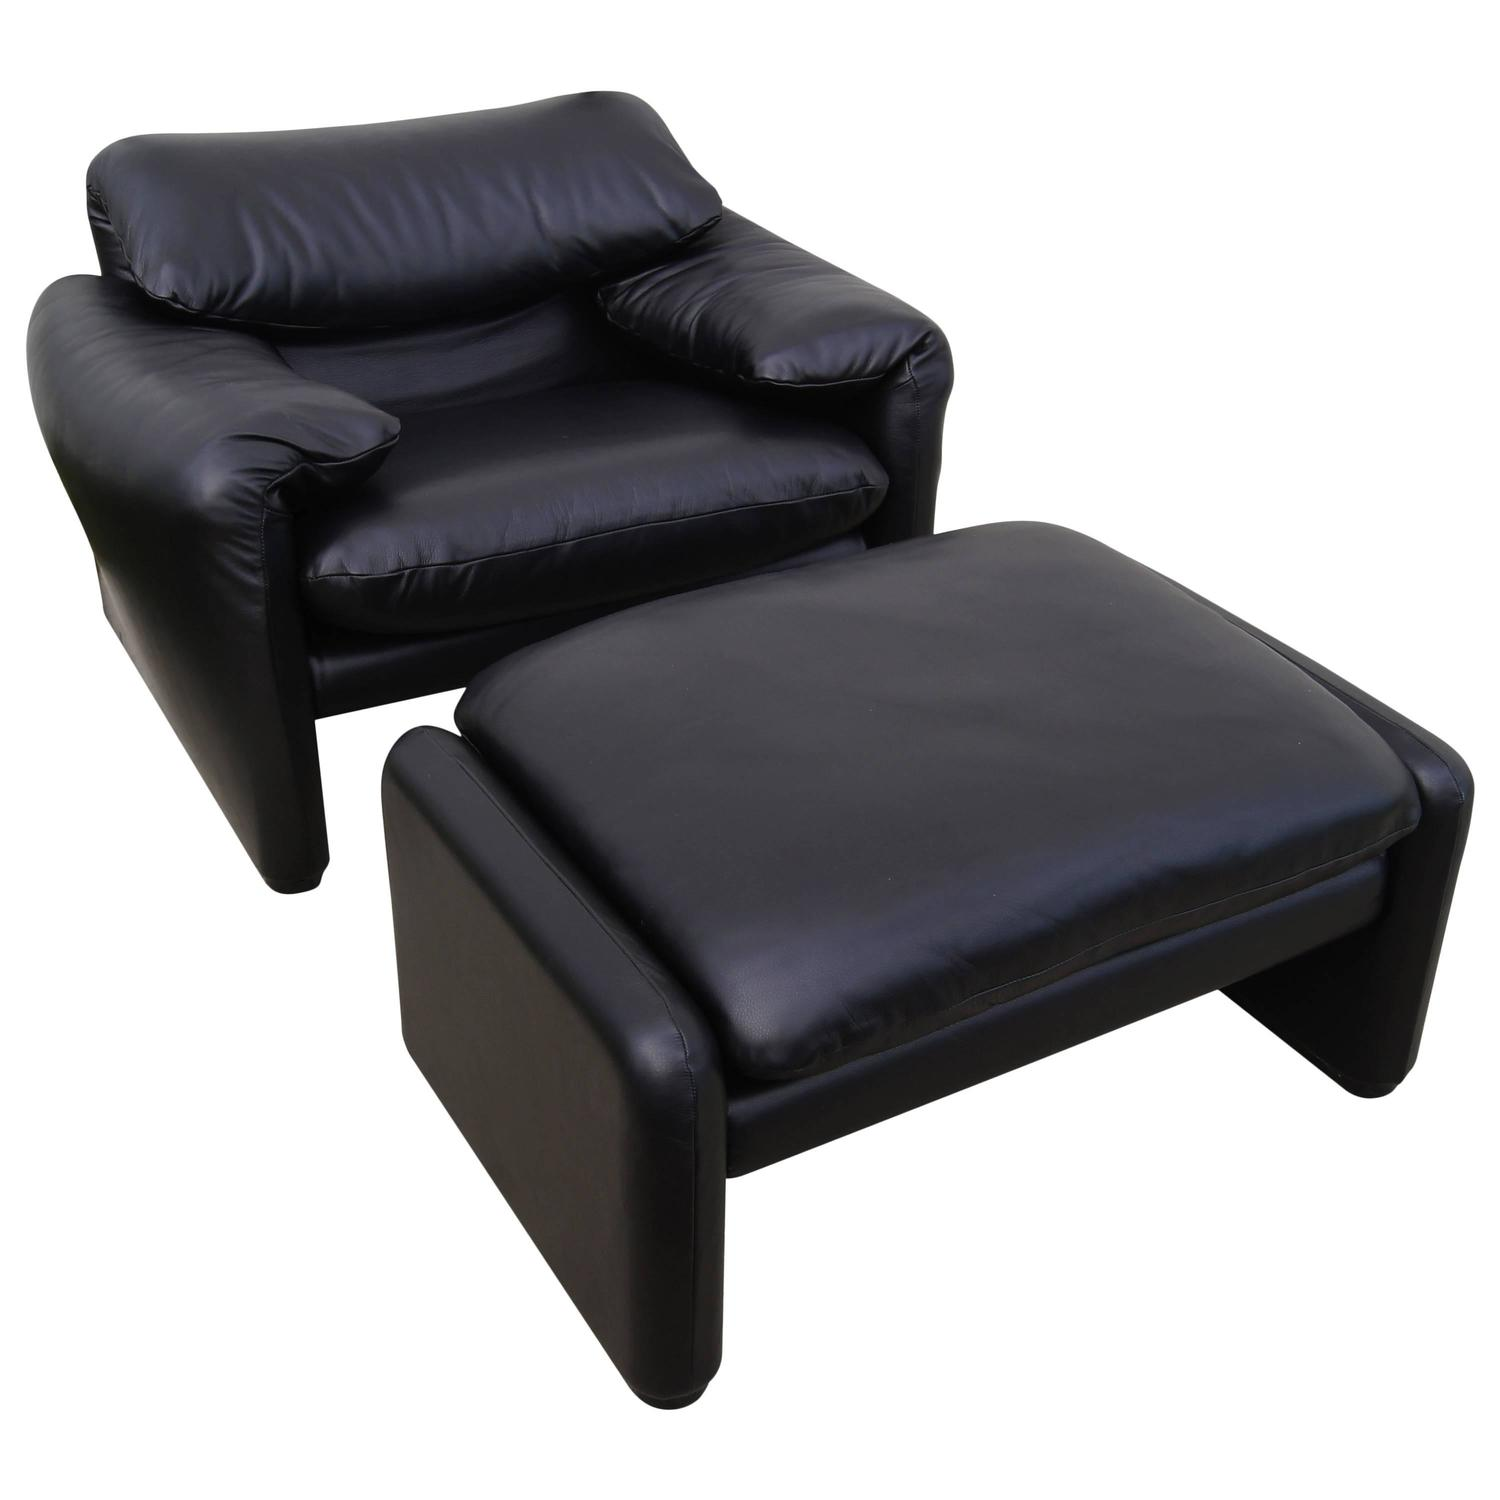 Leather Maralunga Lounge Chair And Ottoman By Vico Magistretti For Cassina  For Sale At 1stdibs